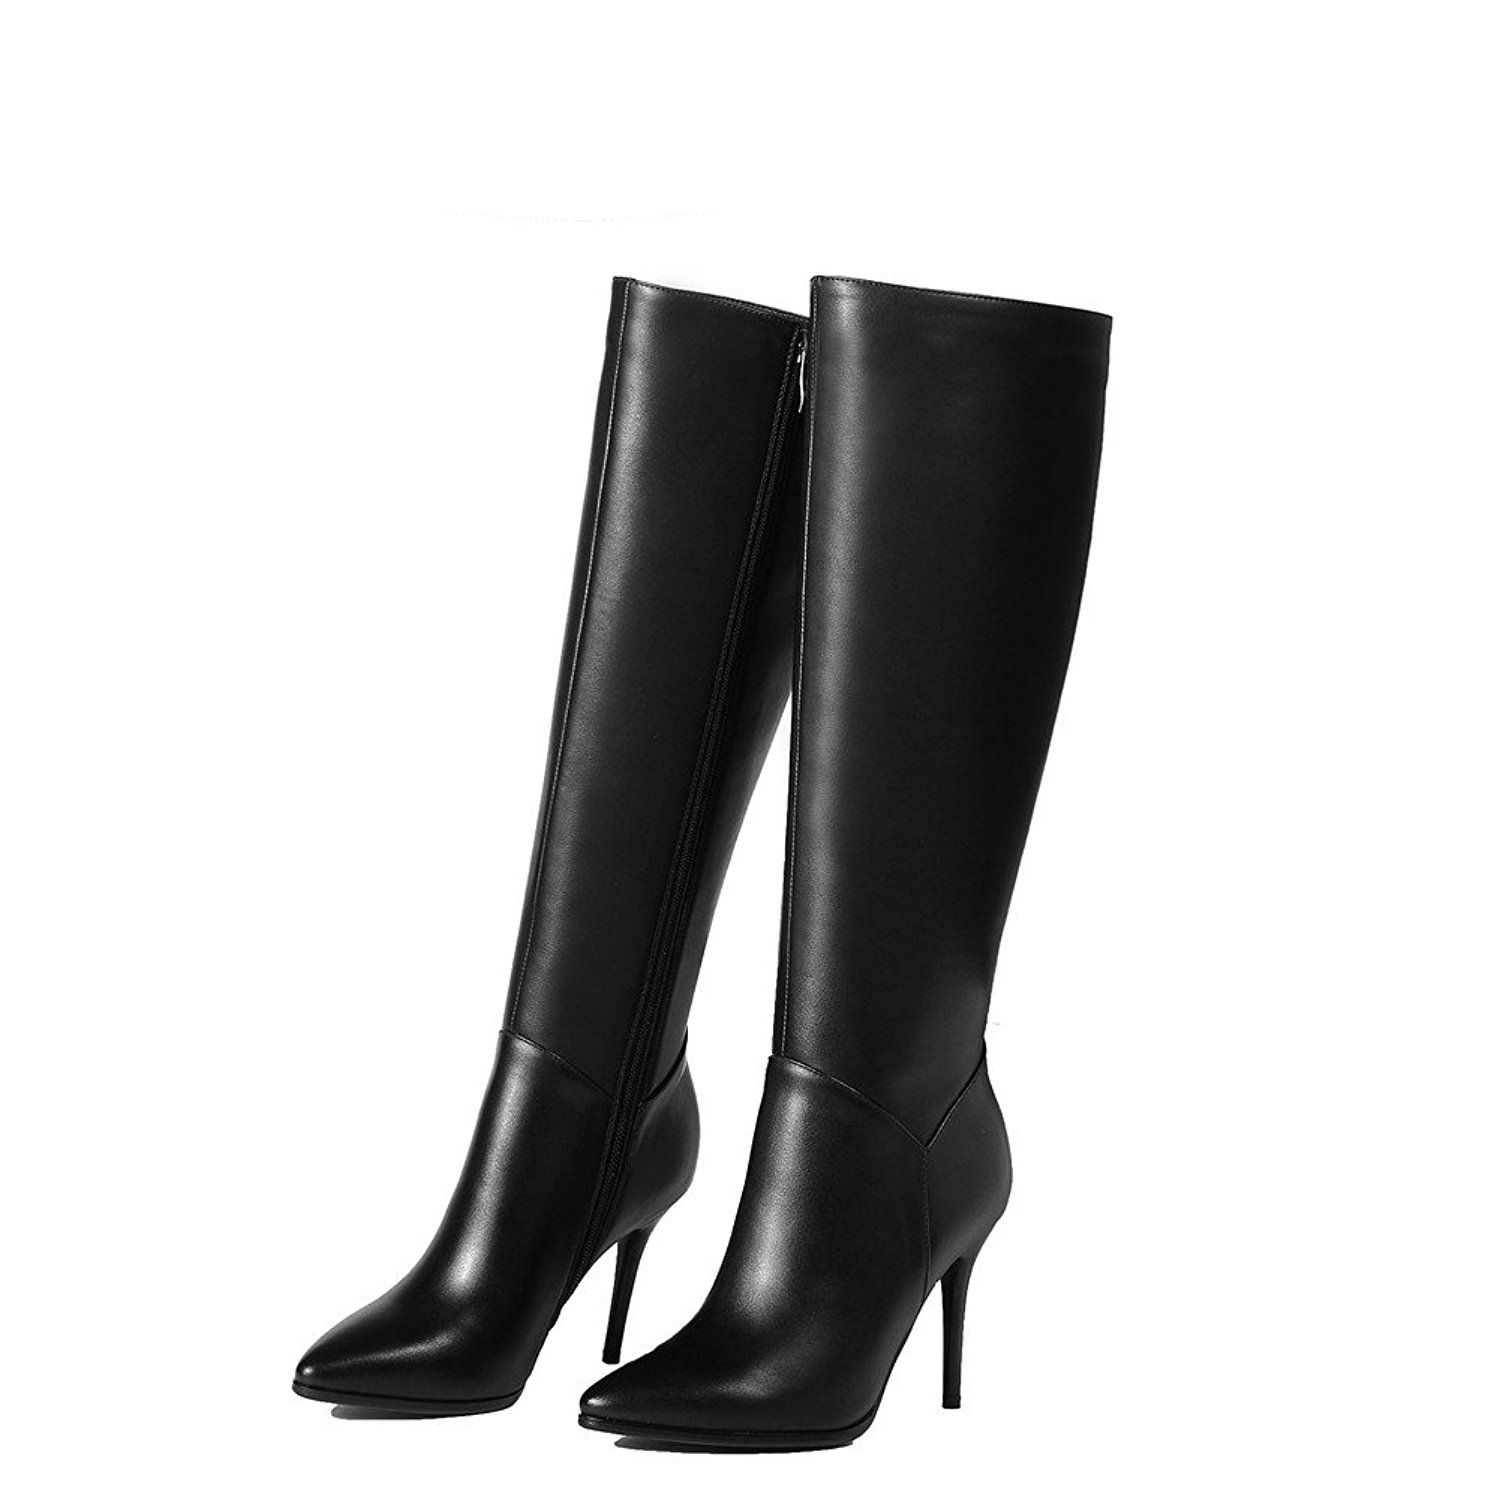 7c2e9825c5c Nine Seven Genuine Leather Womens Stiletto Heel Pointed Toe Wide Calf Knee  High Boot with Side Zip    Special boots just for you. See it now!   Work  boots